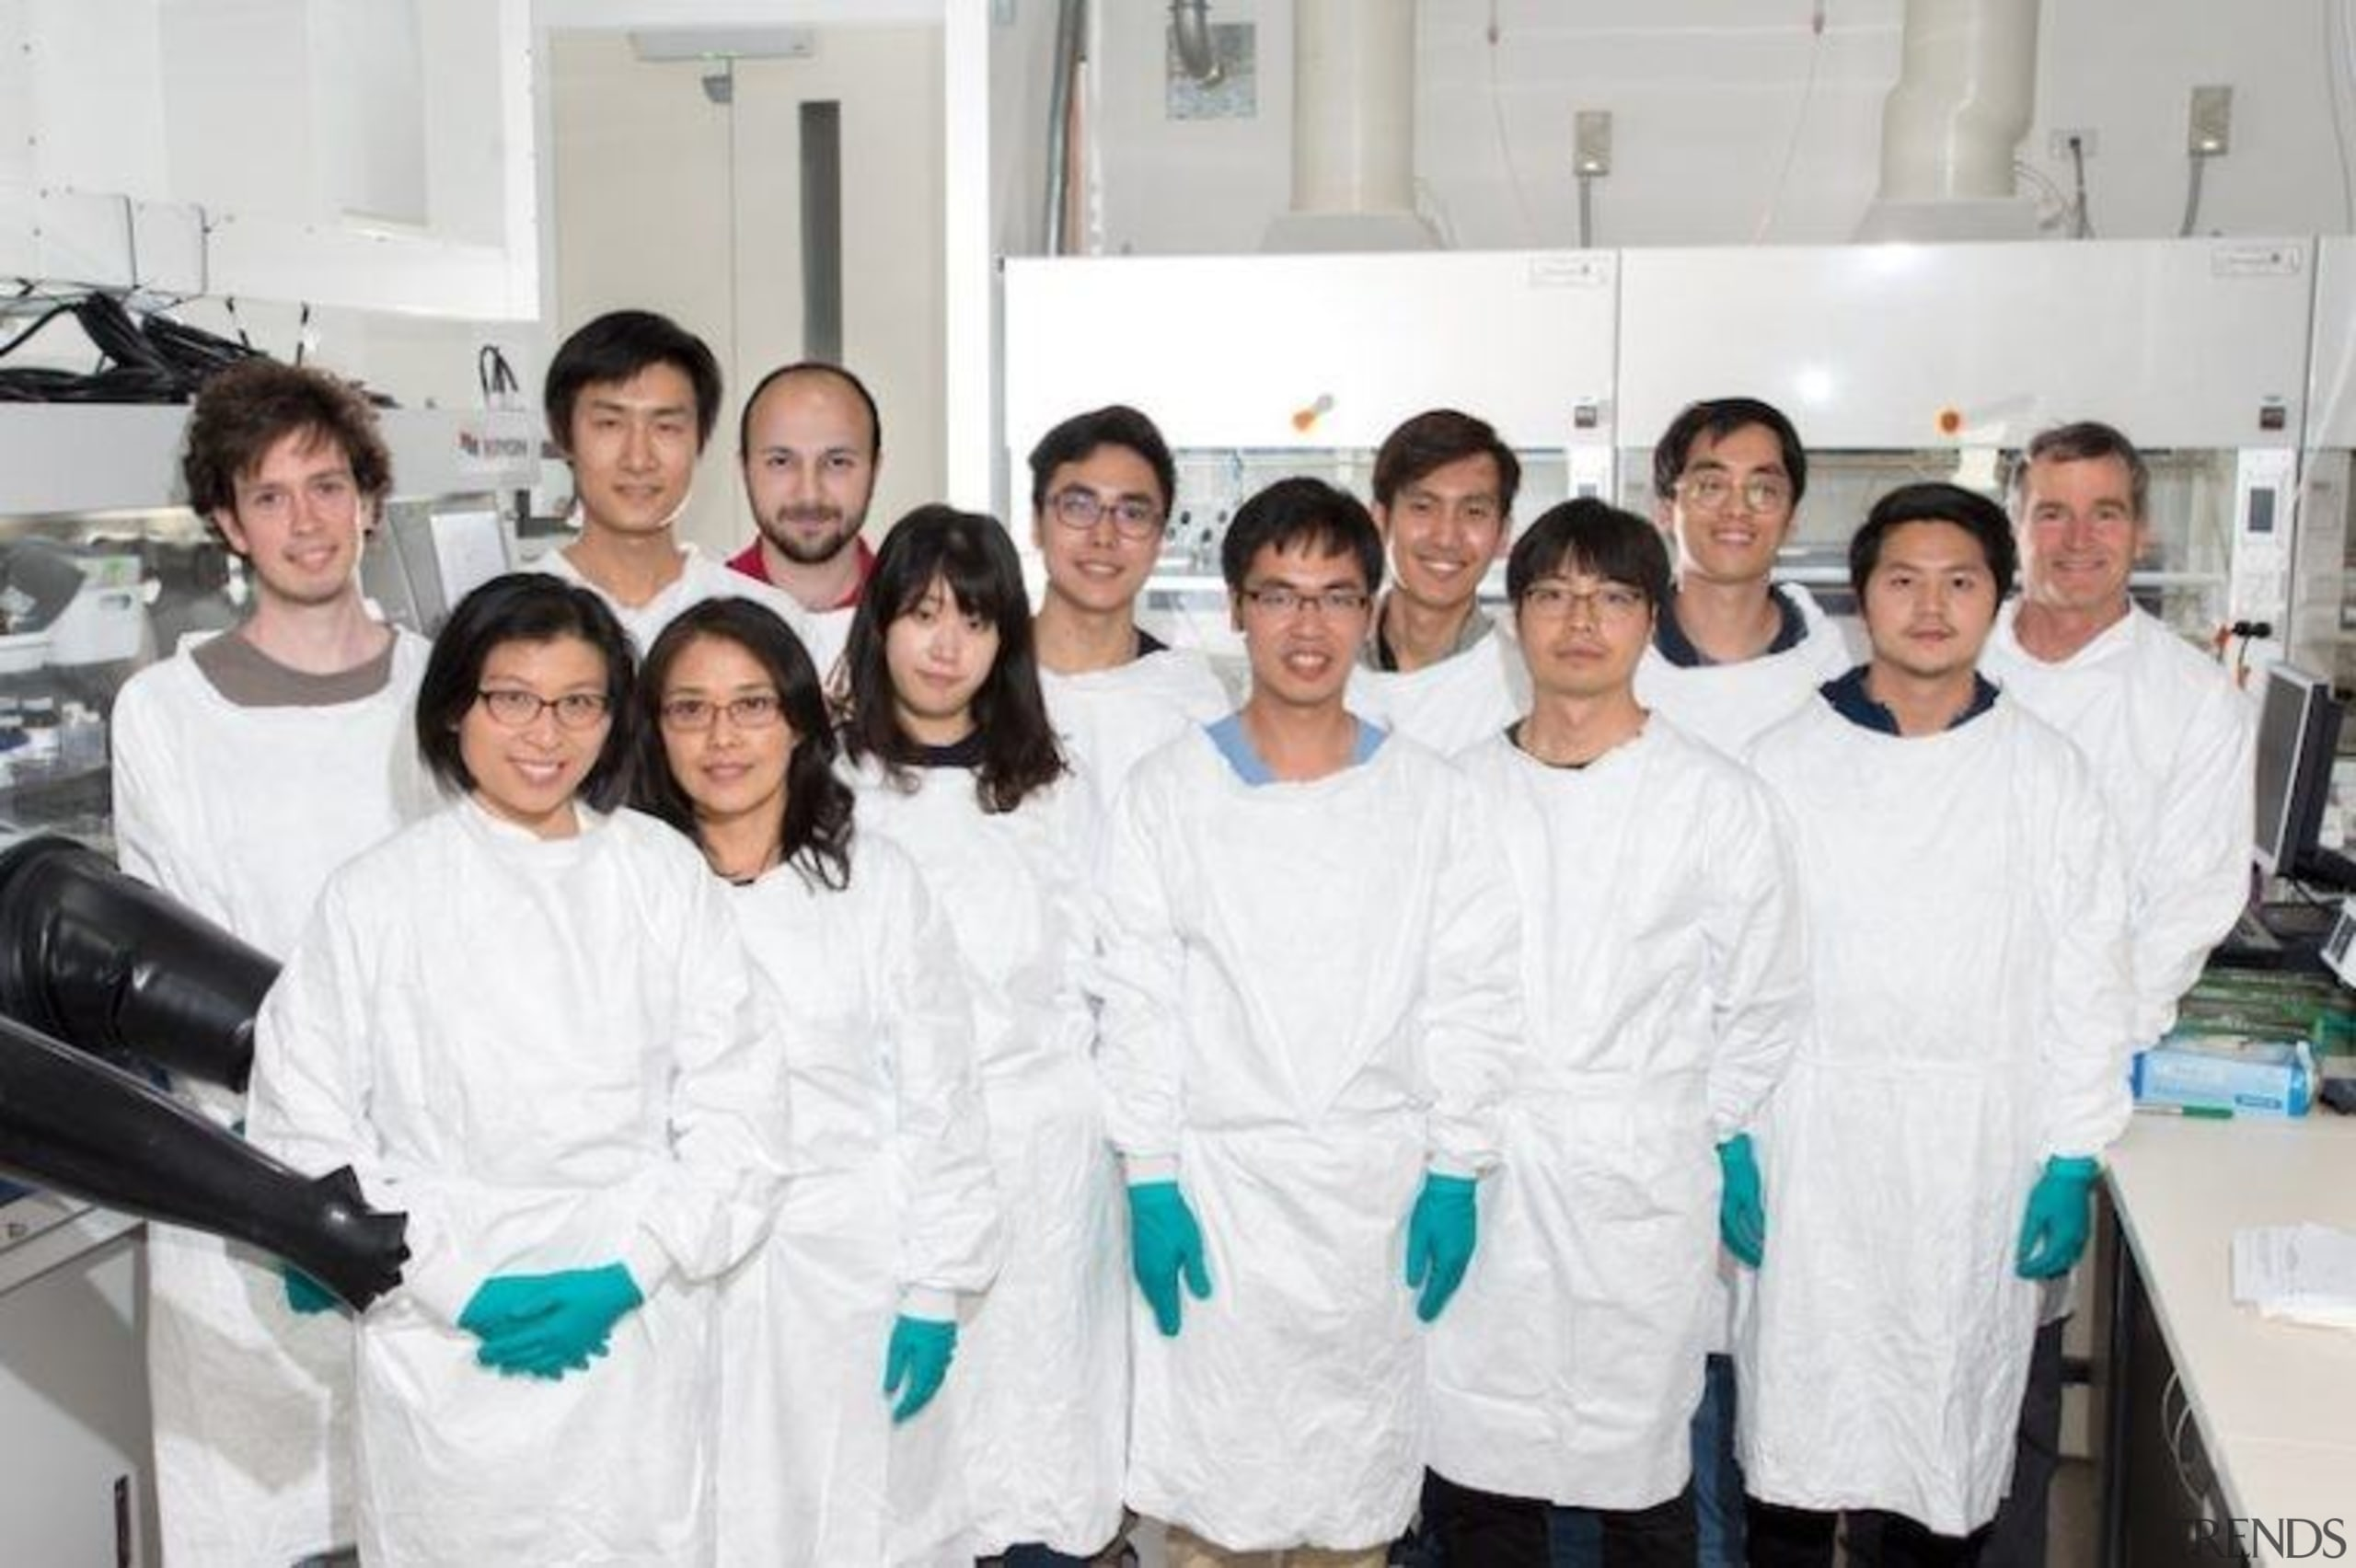 Dr Anita Ho-Baillie and her team - Dr biomedical scientist, chemist, chemistry, healthcare science, institution, laboratory, medical research, profession, professional, research, researcher, service, team, white